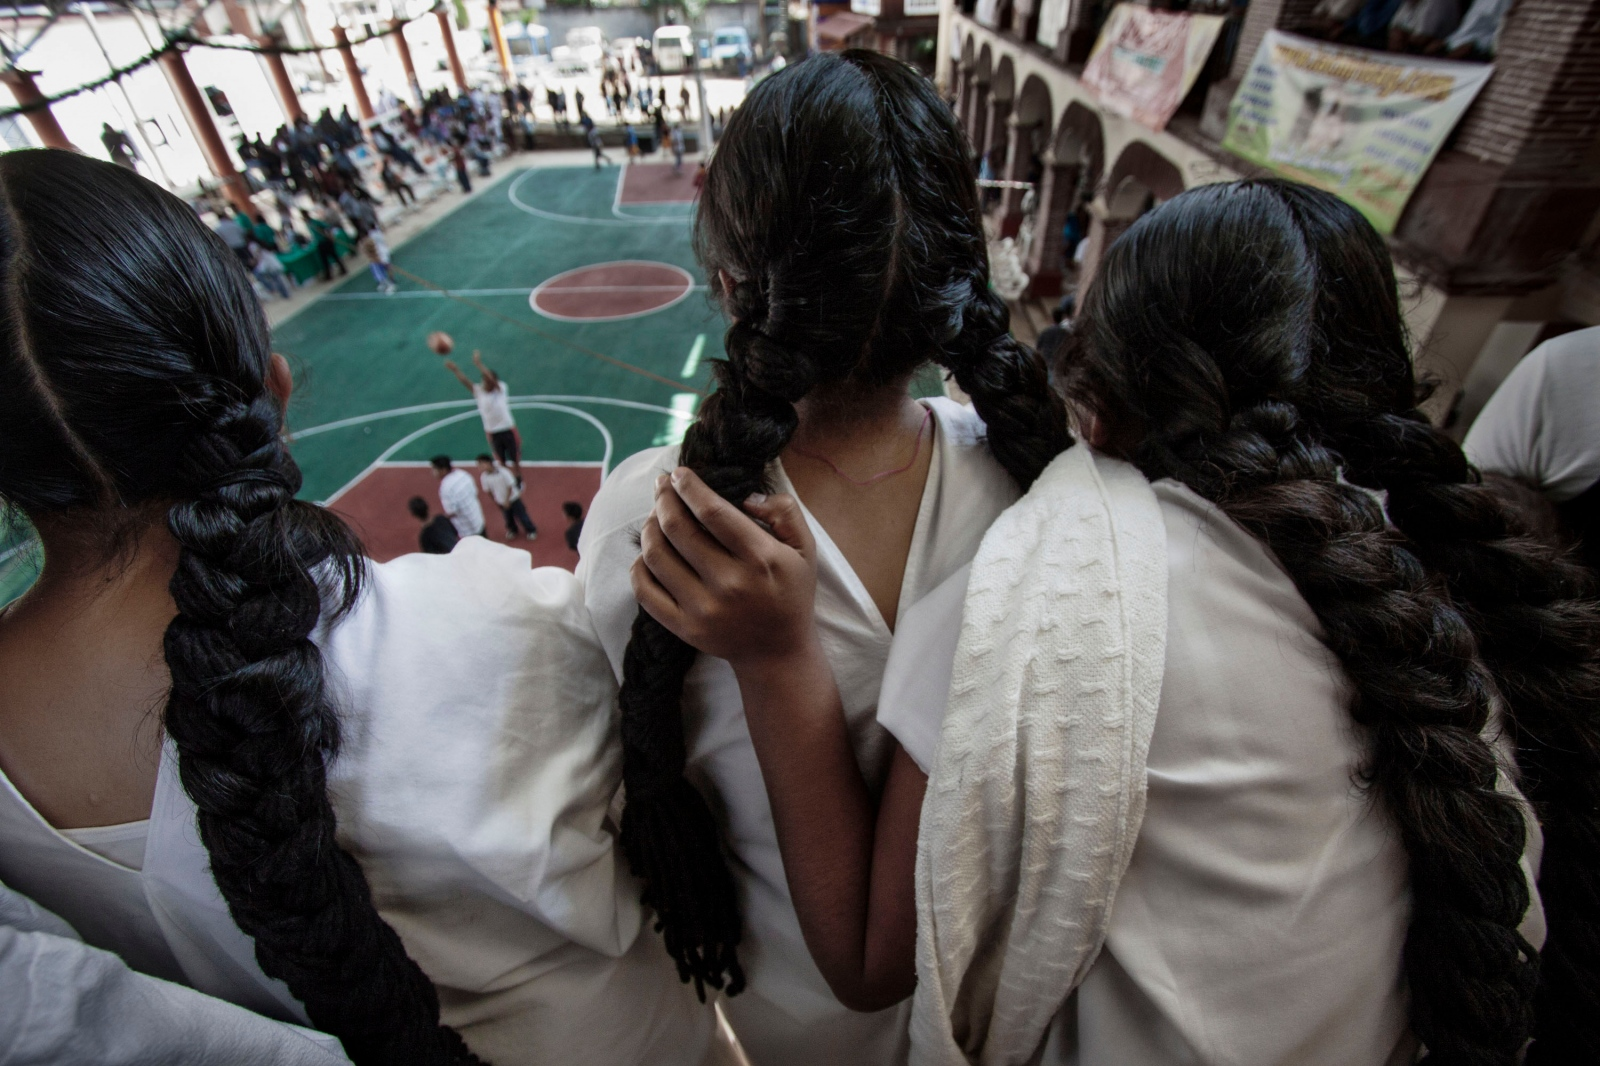 SAN CRISTÓBAL LACHIRIOAG, NOVEMBER 21, 2009. Indigenous Zapotec girls in traditional dress watch a basketball game in San Cristobal Lachiroag.